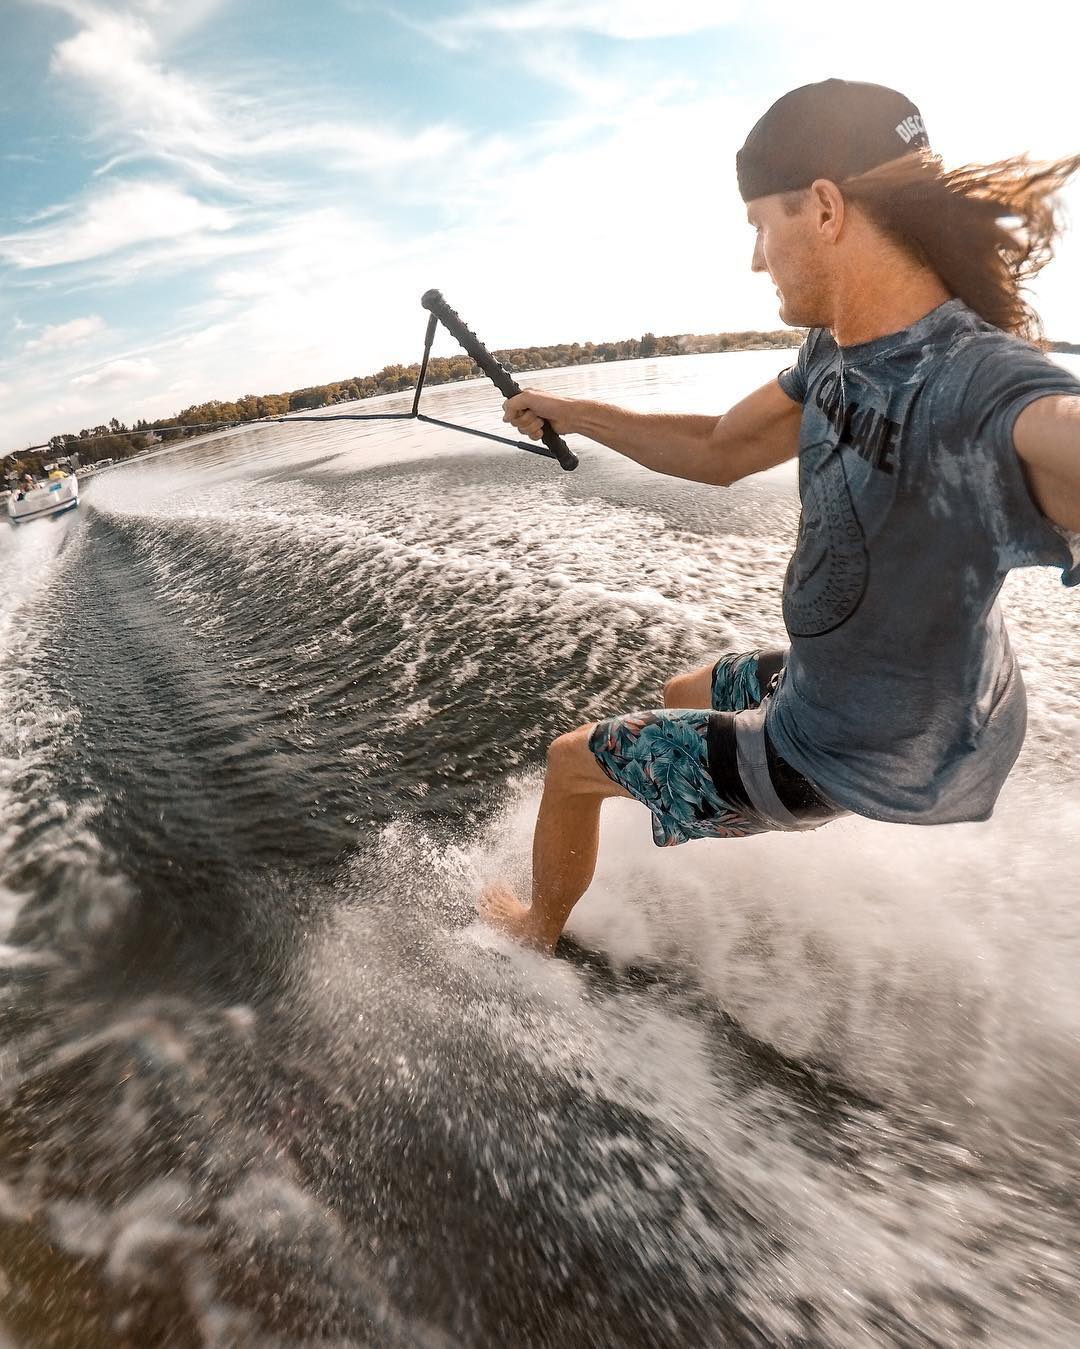 Things we will miss about summer: living that #LakeLife like our boy @rorykramer. #GoPro #HERO5